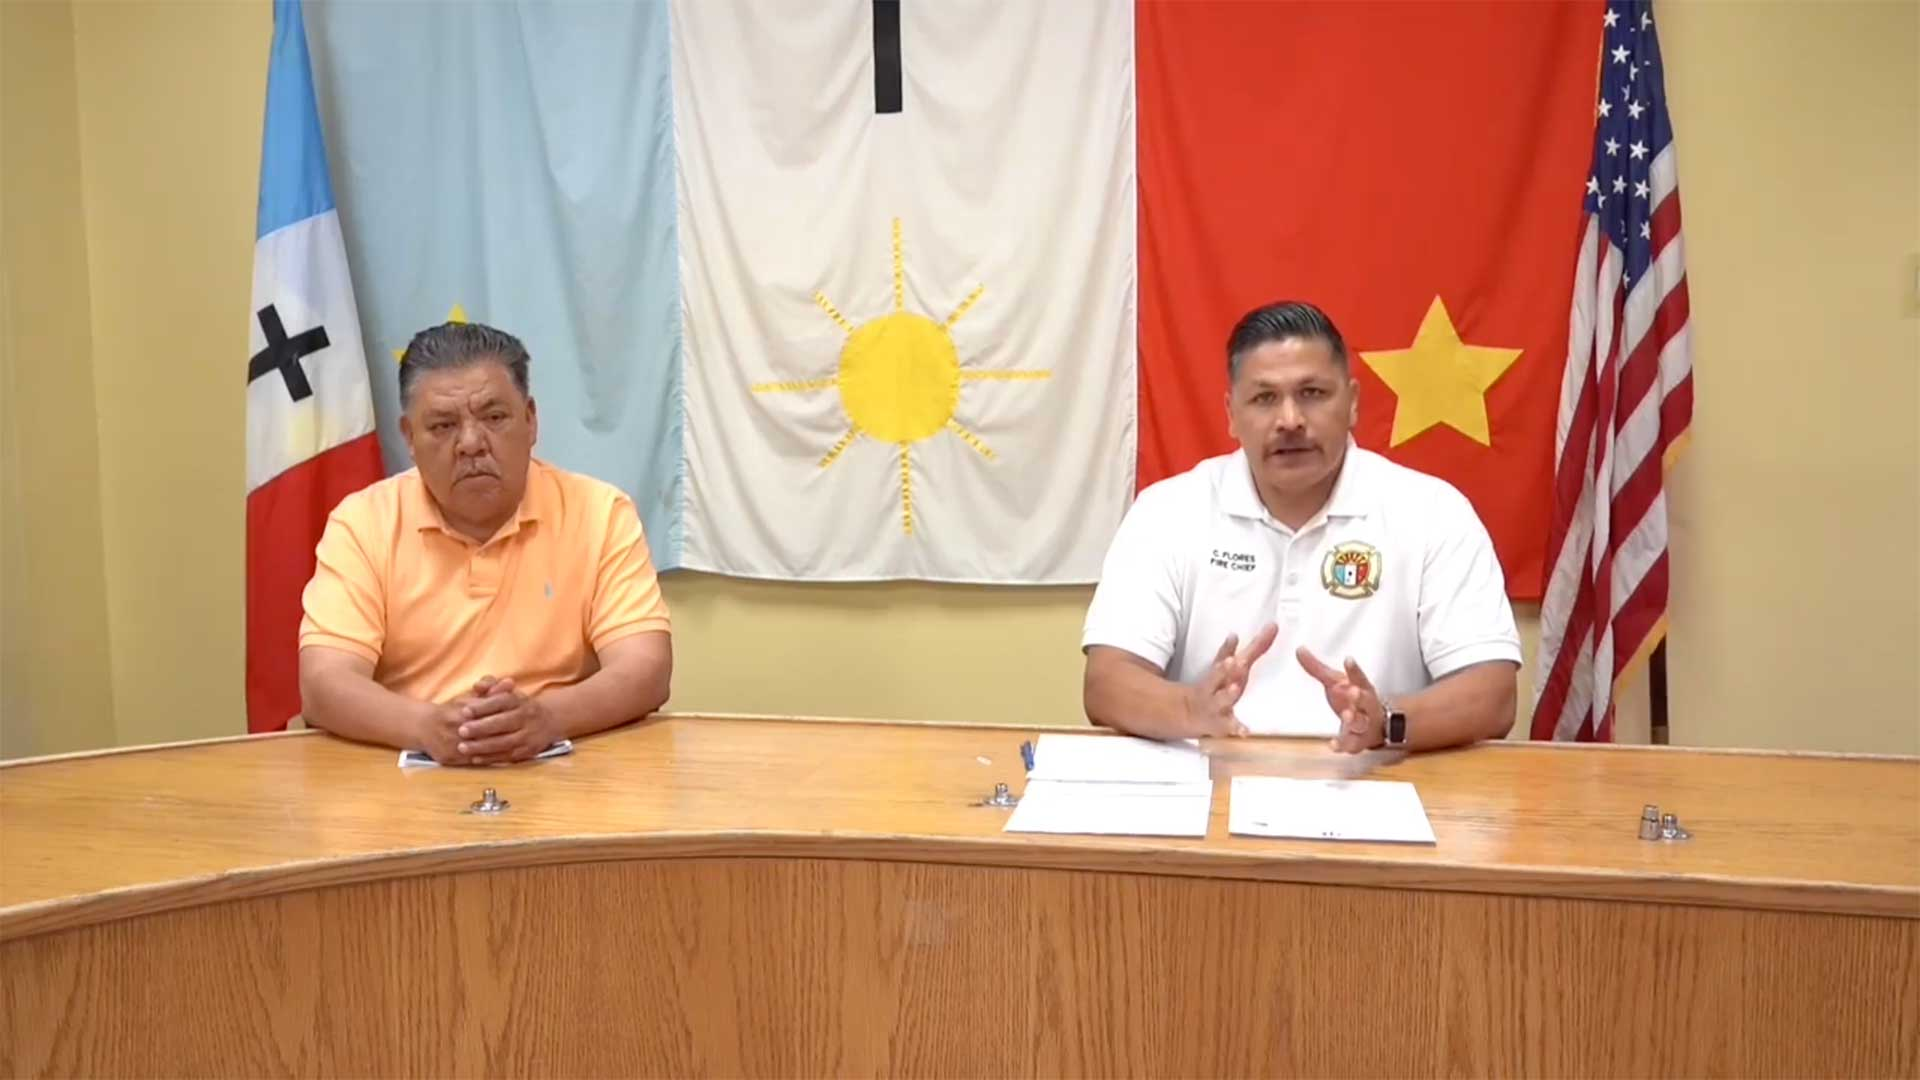 Pascua Yaqui Tribe Chairman Robert Valencia, left, and Carlos Flores, fire chief and COVID-19 emergency response coordinator, update the community on screening and testing opportunities in this still image from an April 17 Facebook video.